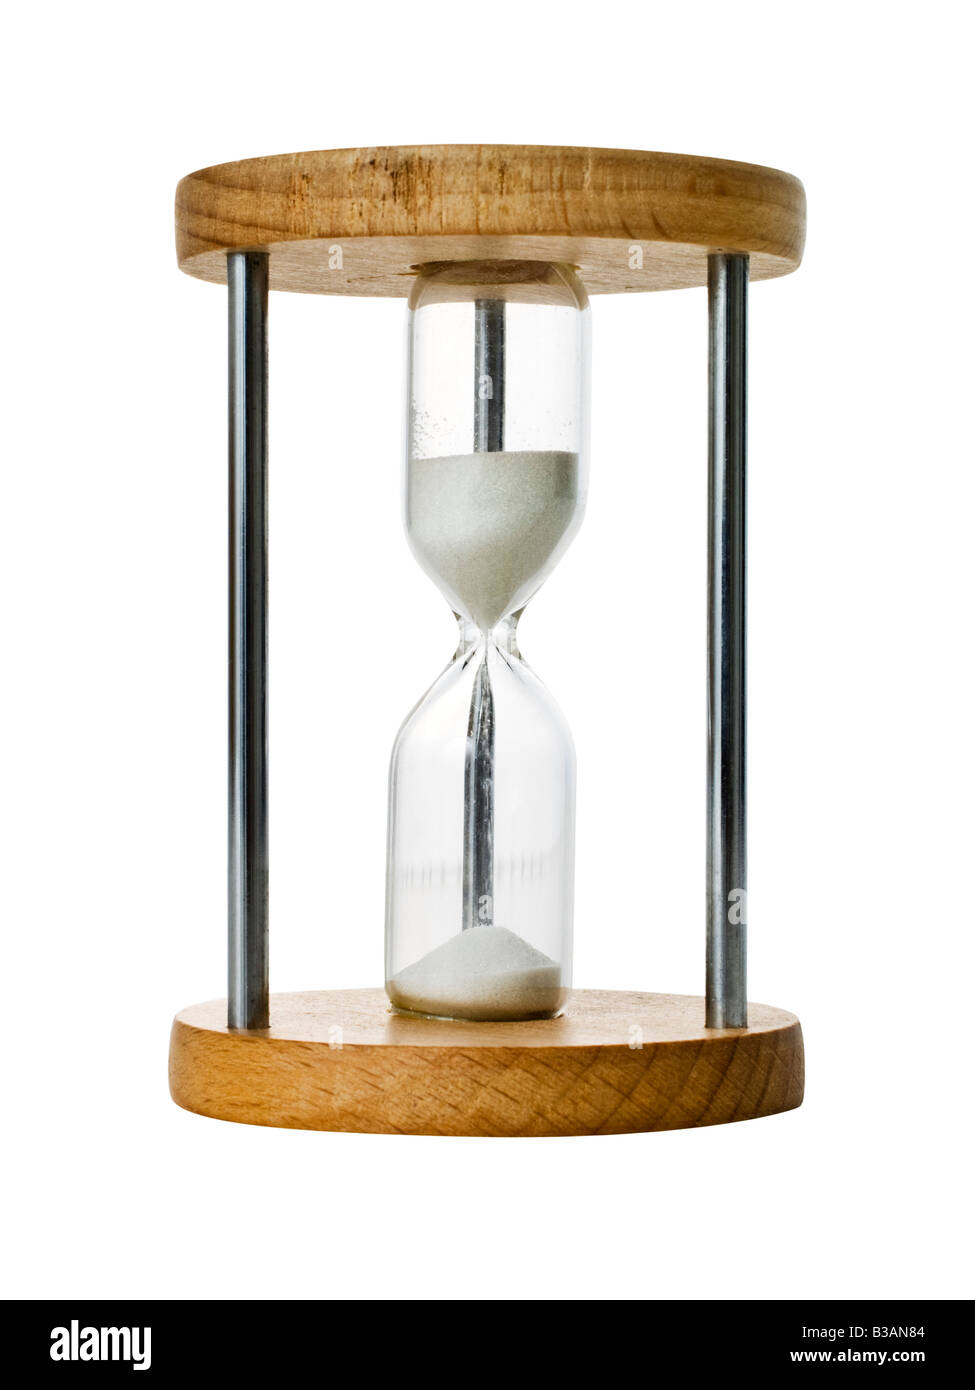 3 Hour Cut Out Stock Images Pictures Alamy Three Timer Hourglass Sand Glass Image